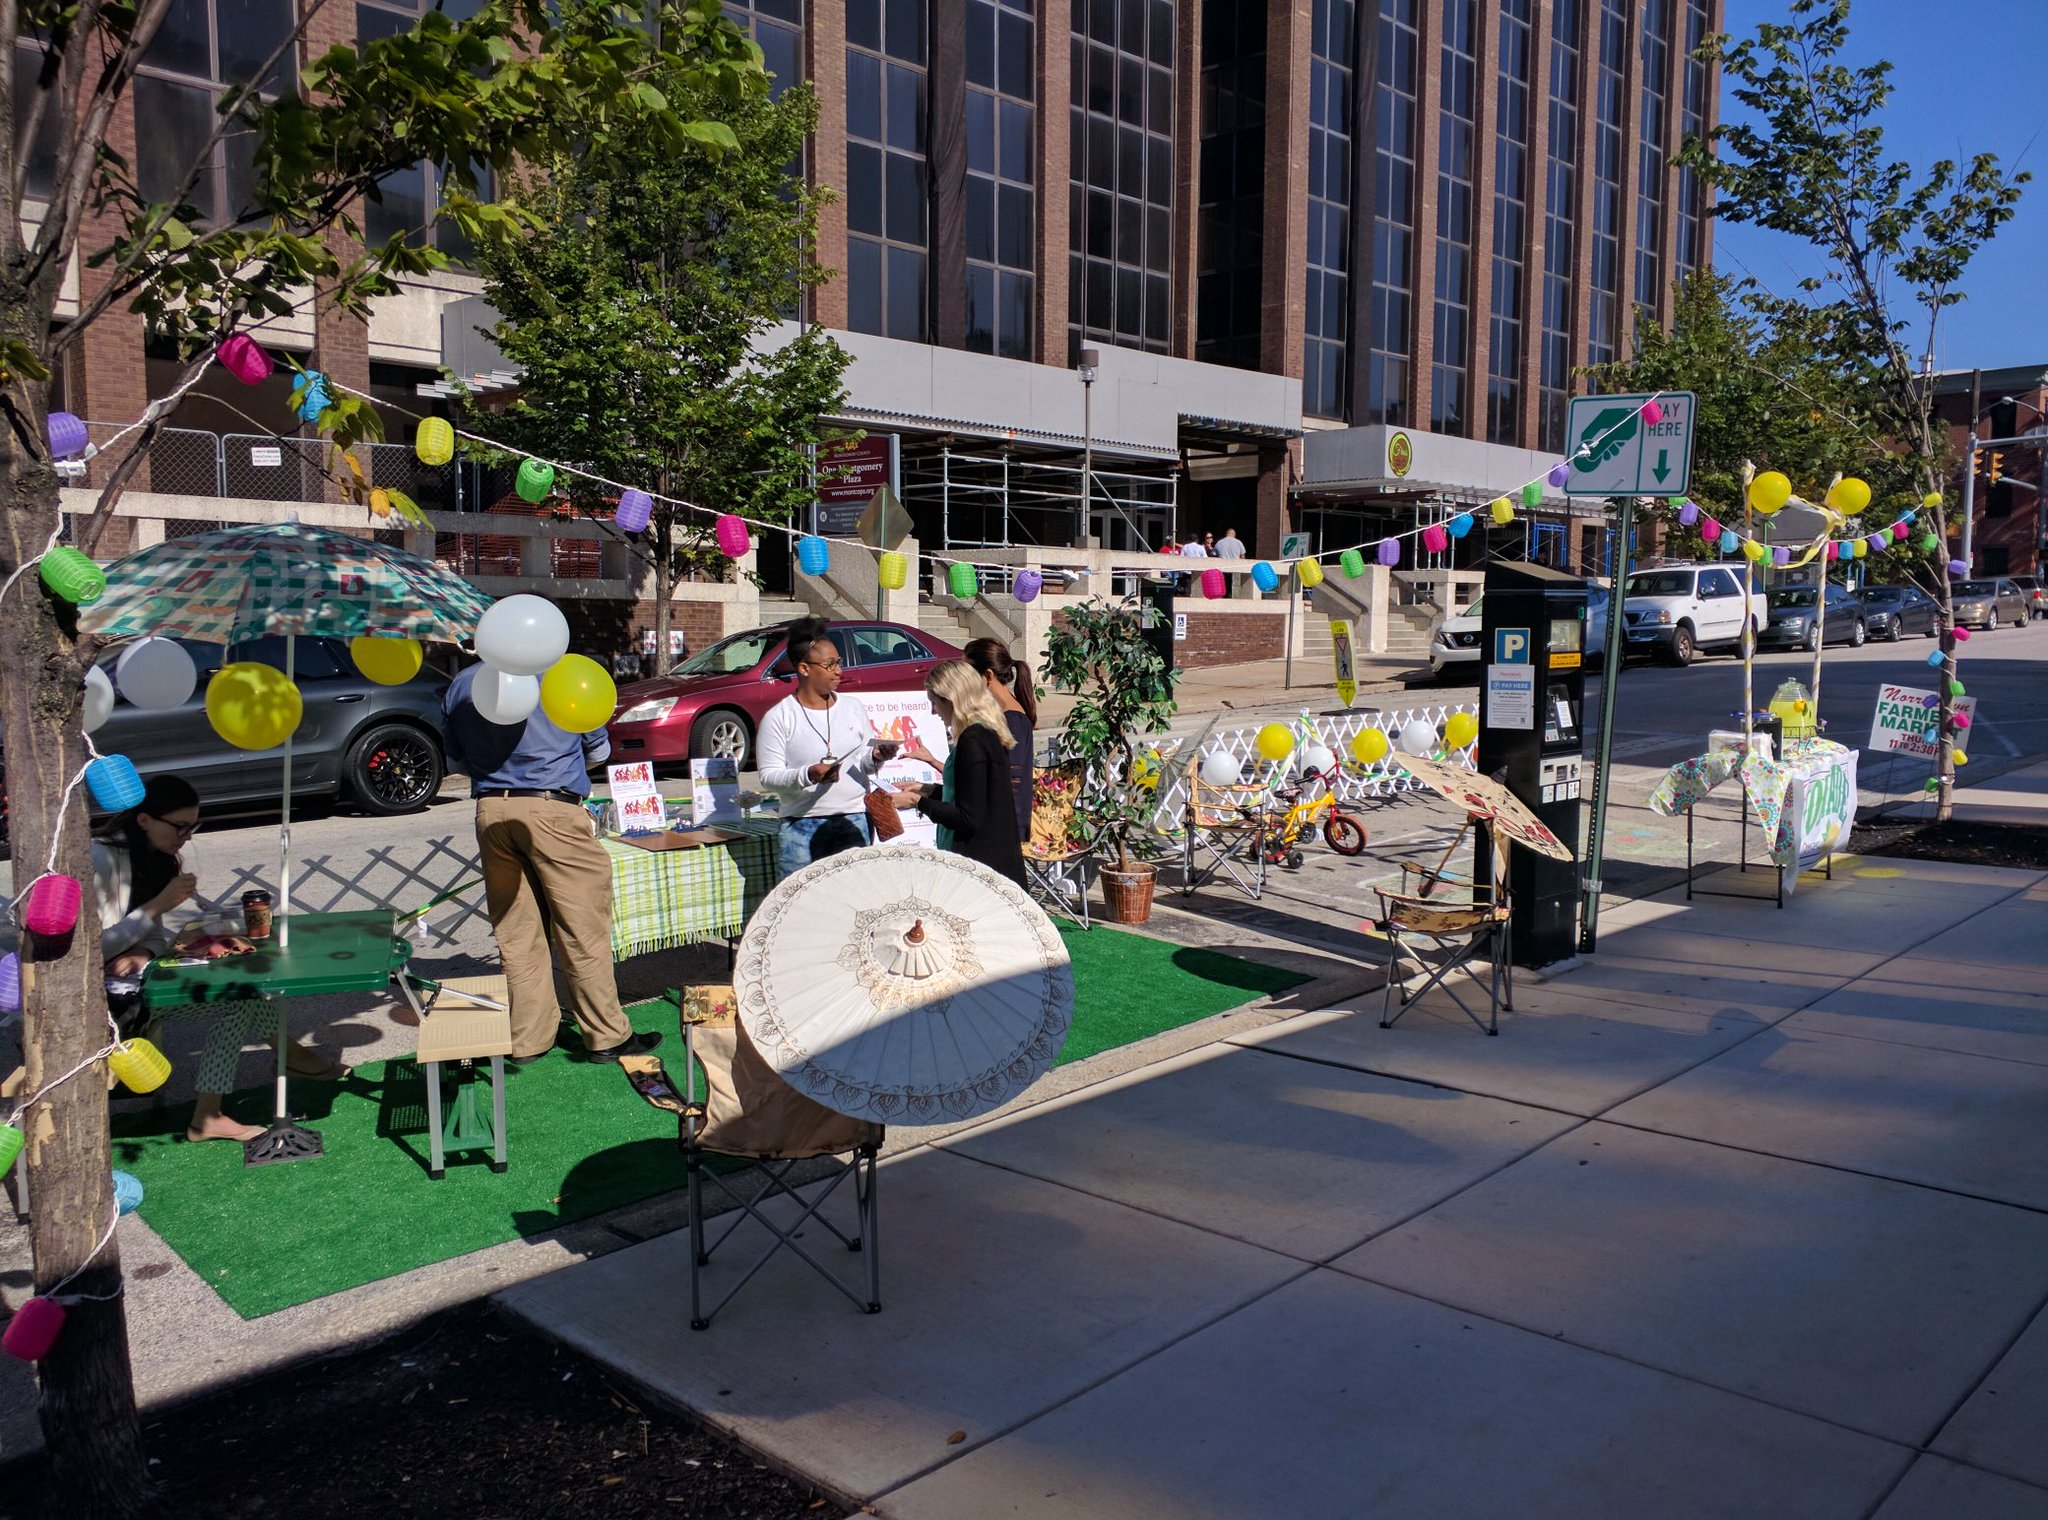 In Norristown, the Montgomery County Planning Commission joins in the Park(ing) Day 2017 fun